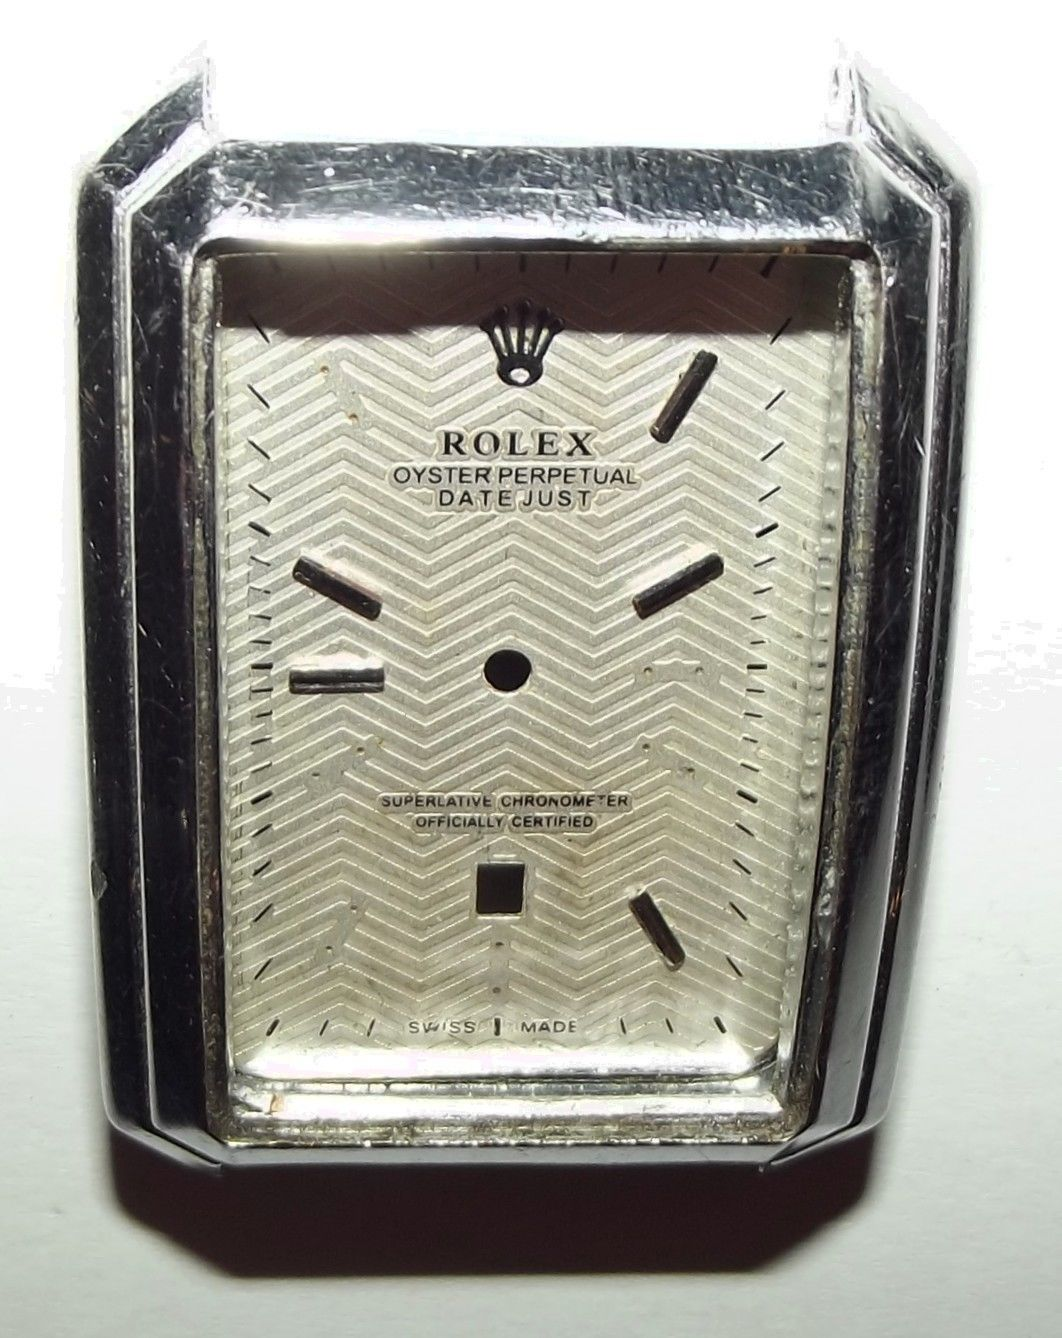 Watch wrist parts -  Rolex Oyster Perpetual Date Just Wrist Watch Face And Case For Parts